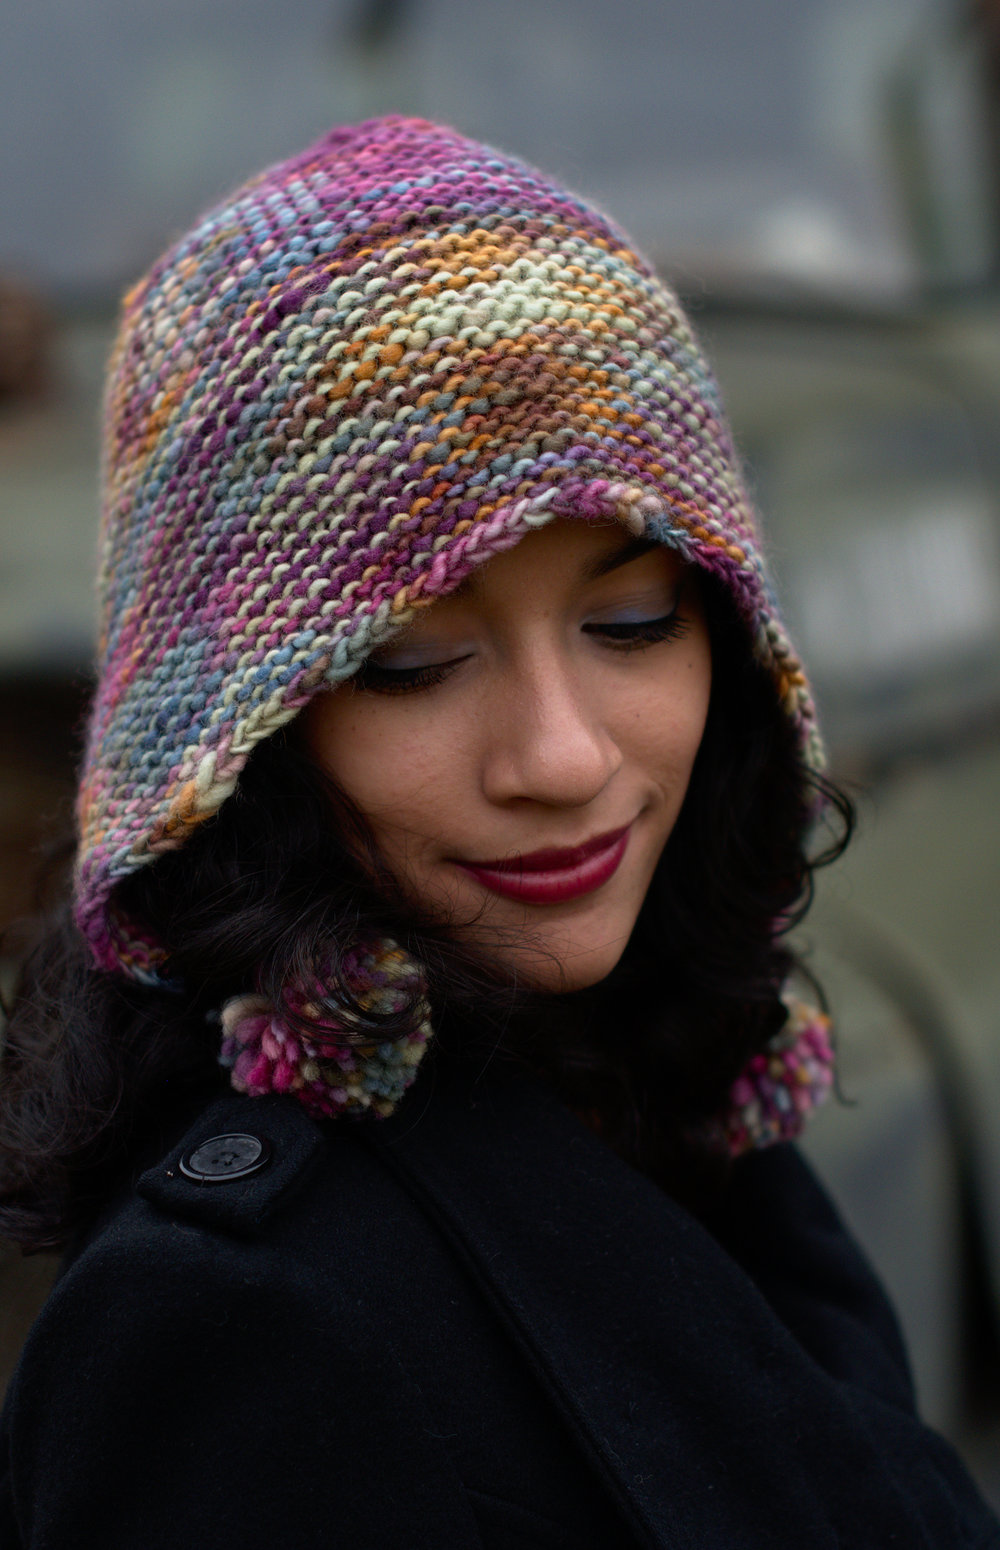 Angelica's Bonnet hand knit Hat pattern for a slouchy bonnet in chunky weight hand-dyed yarn